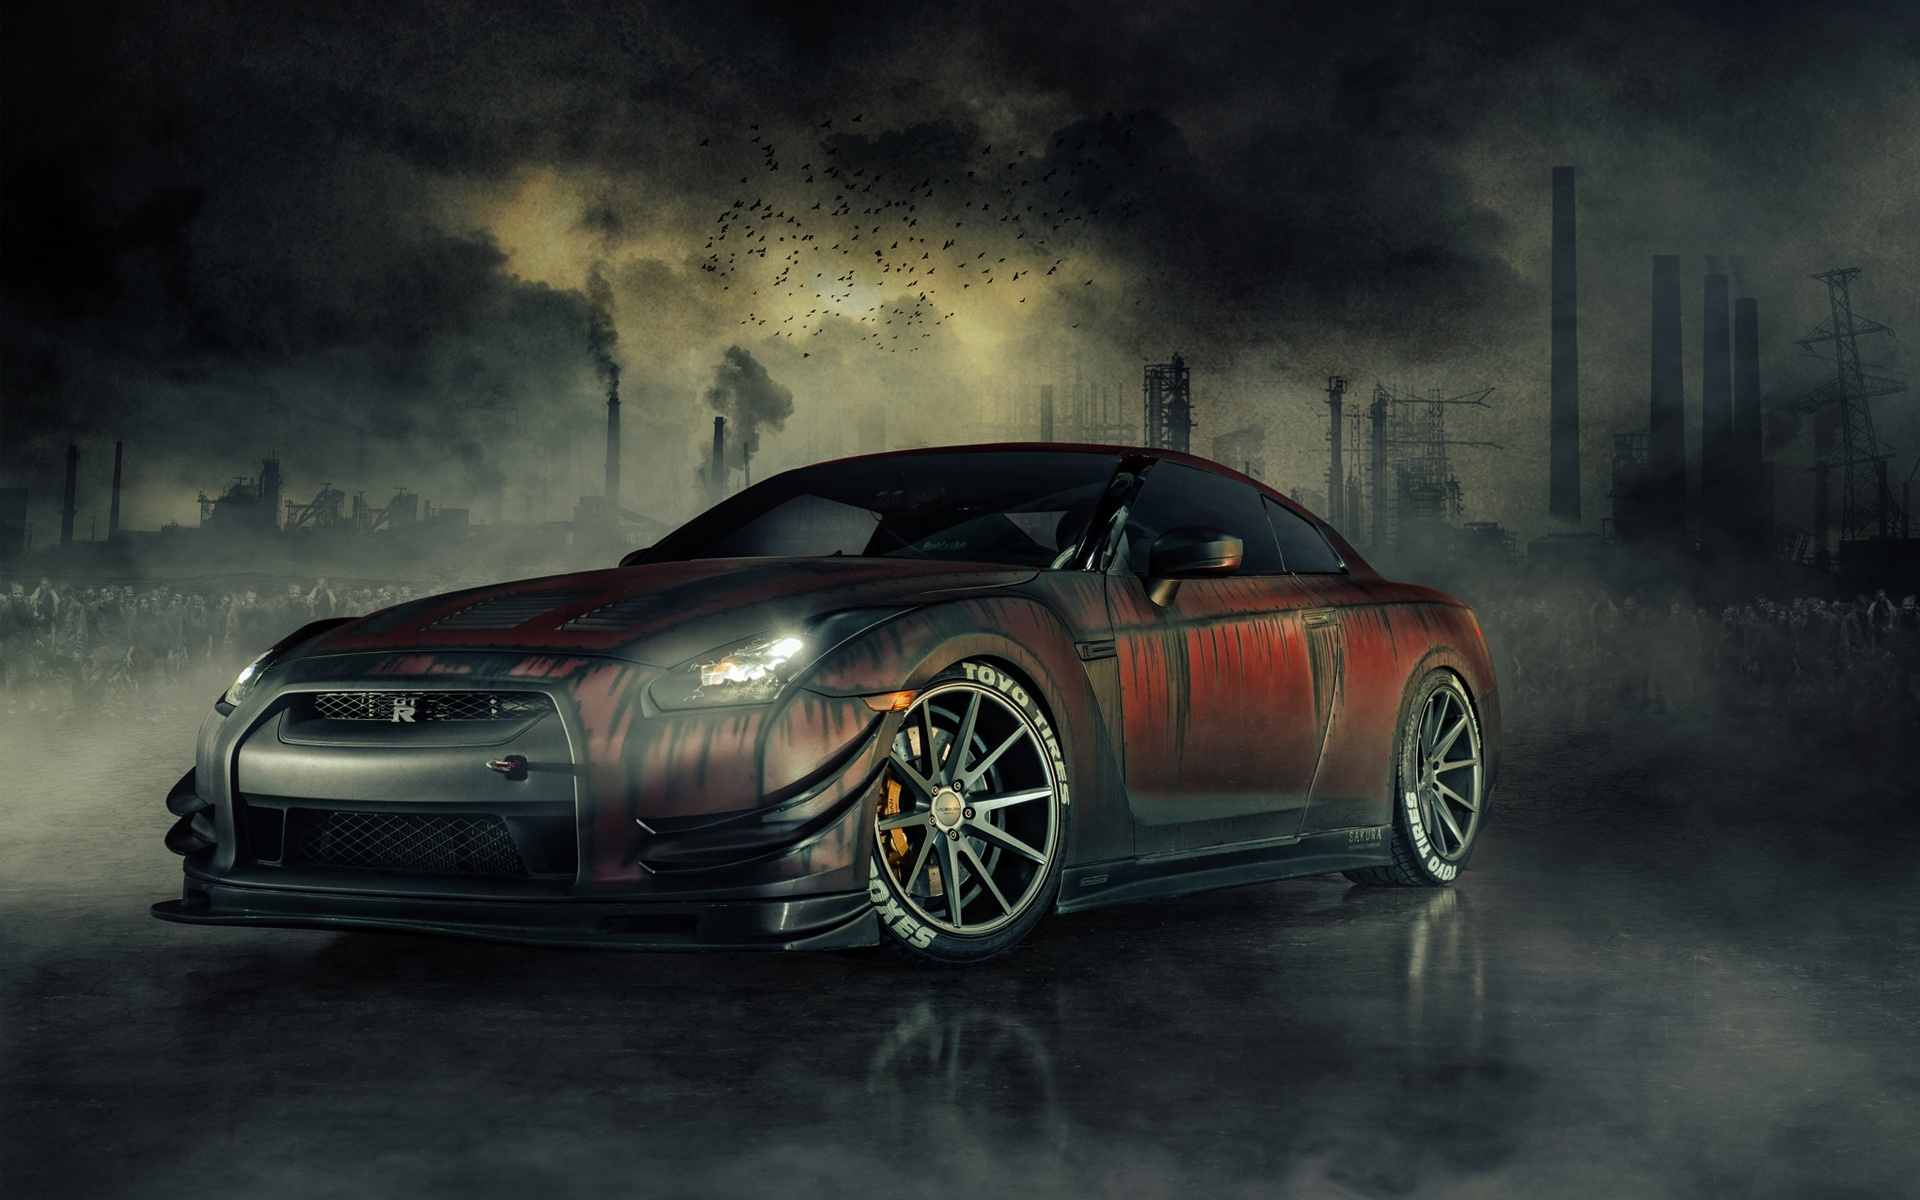 Nissan GT R car wallpaper Gallery 1920x1200